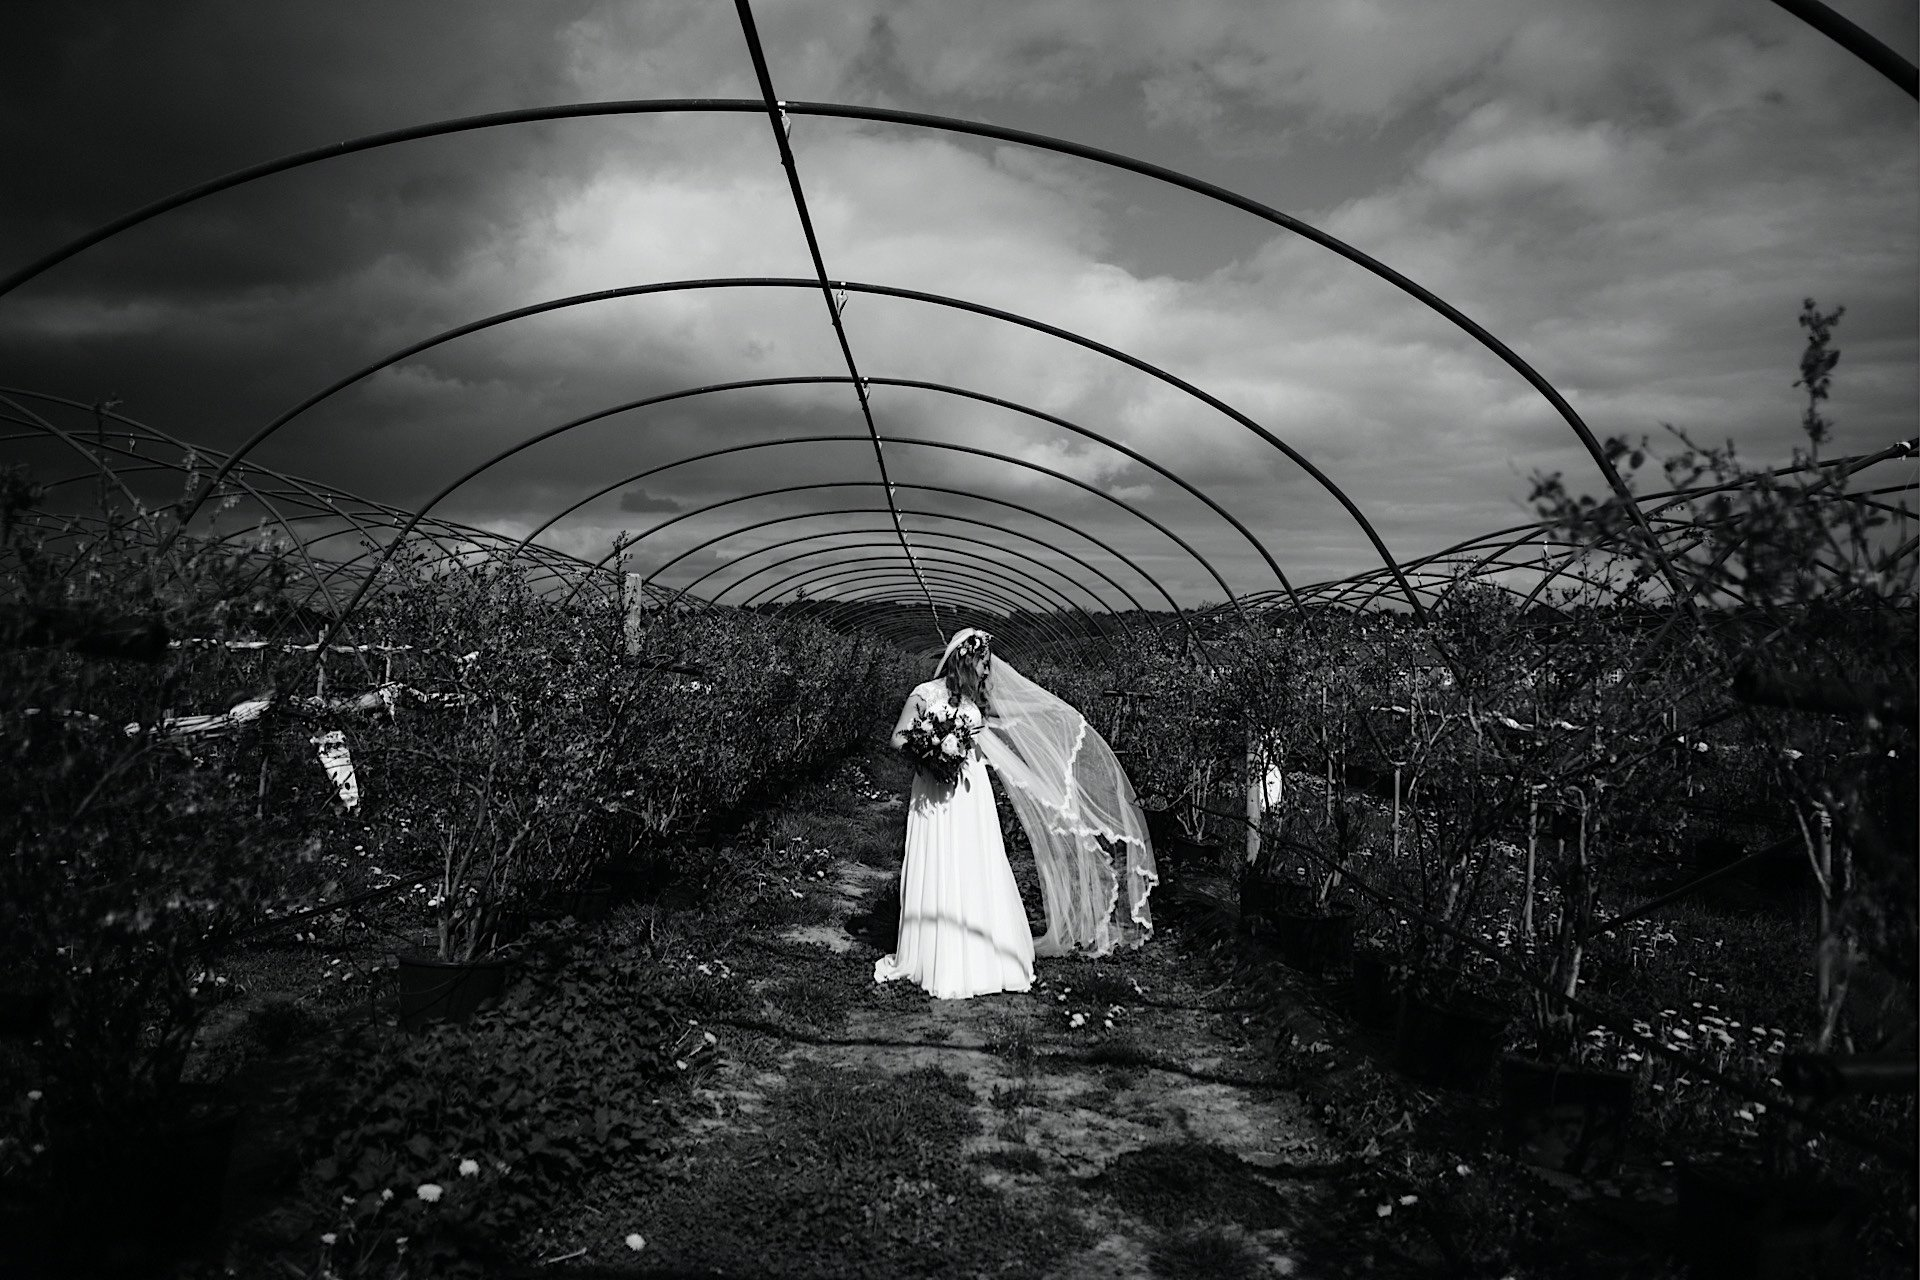 Wind of and under veil black image blowing frame polytunnel brides White